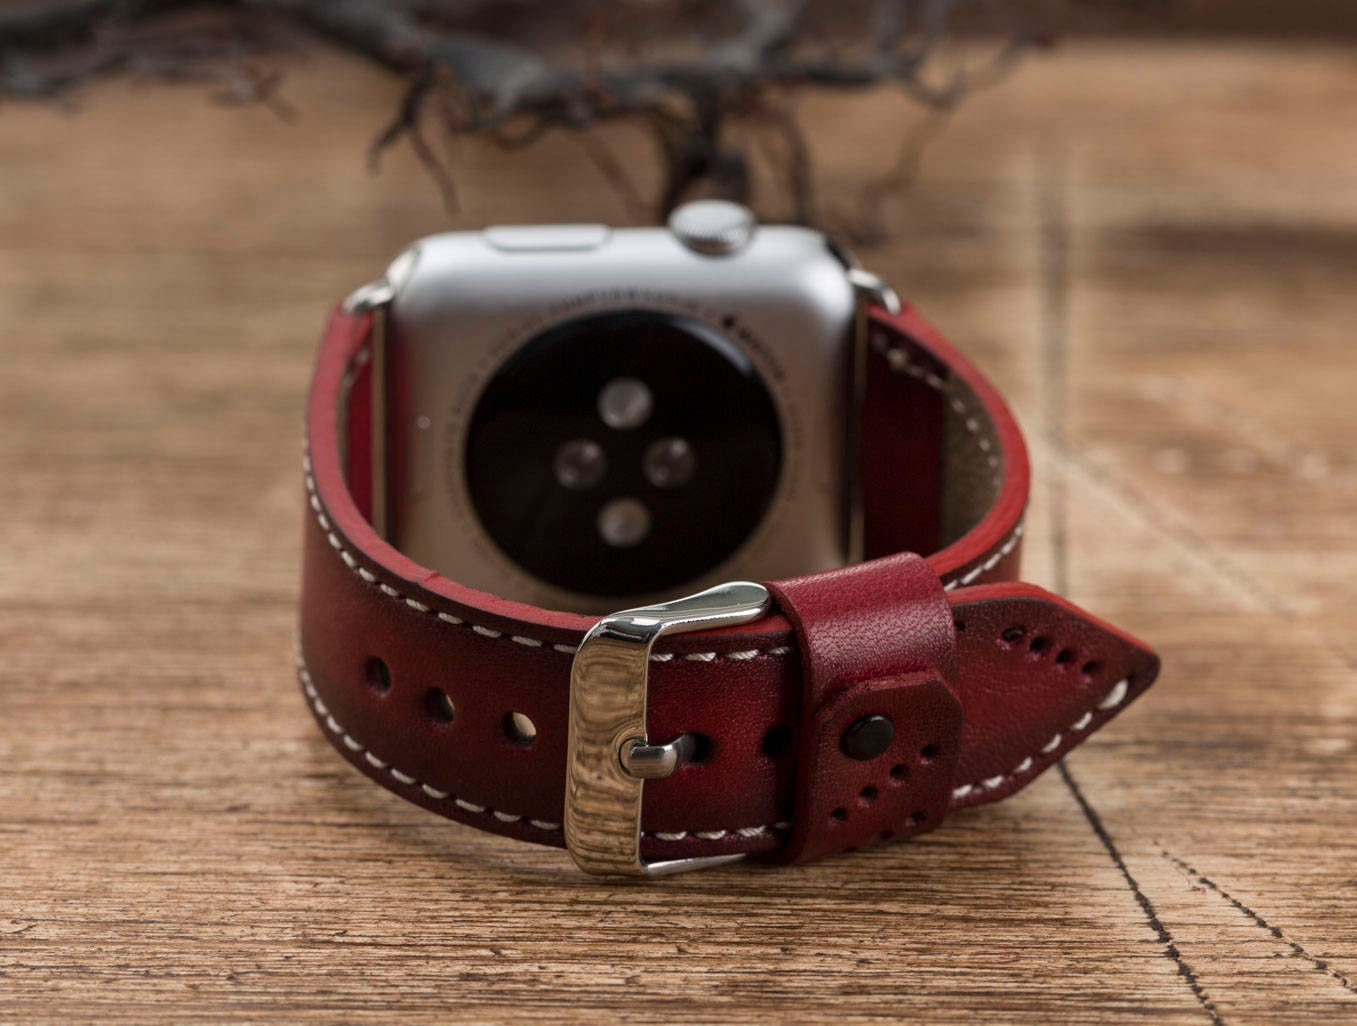 Apple Watch Band 42mm Leather Apple Watch Apple Watch 42mm iWatch Band Apple Watch Leather Apple Band iWatch Strap Leather Watch Band